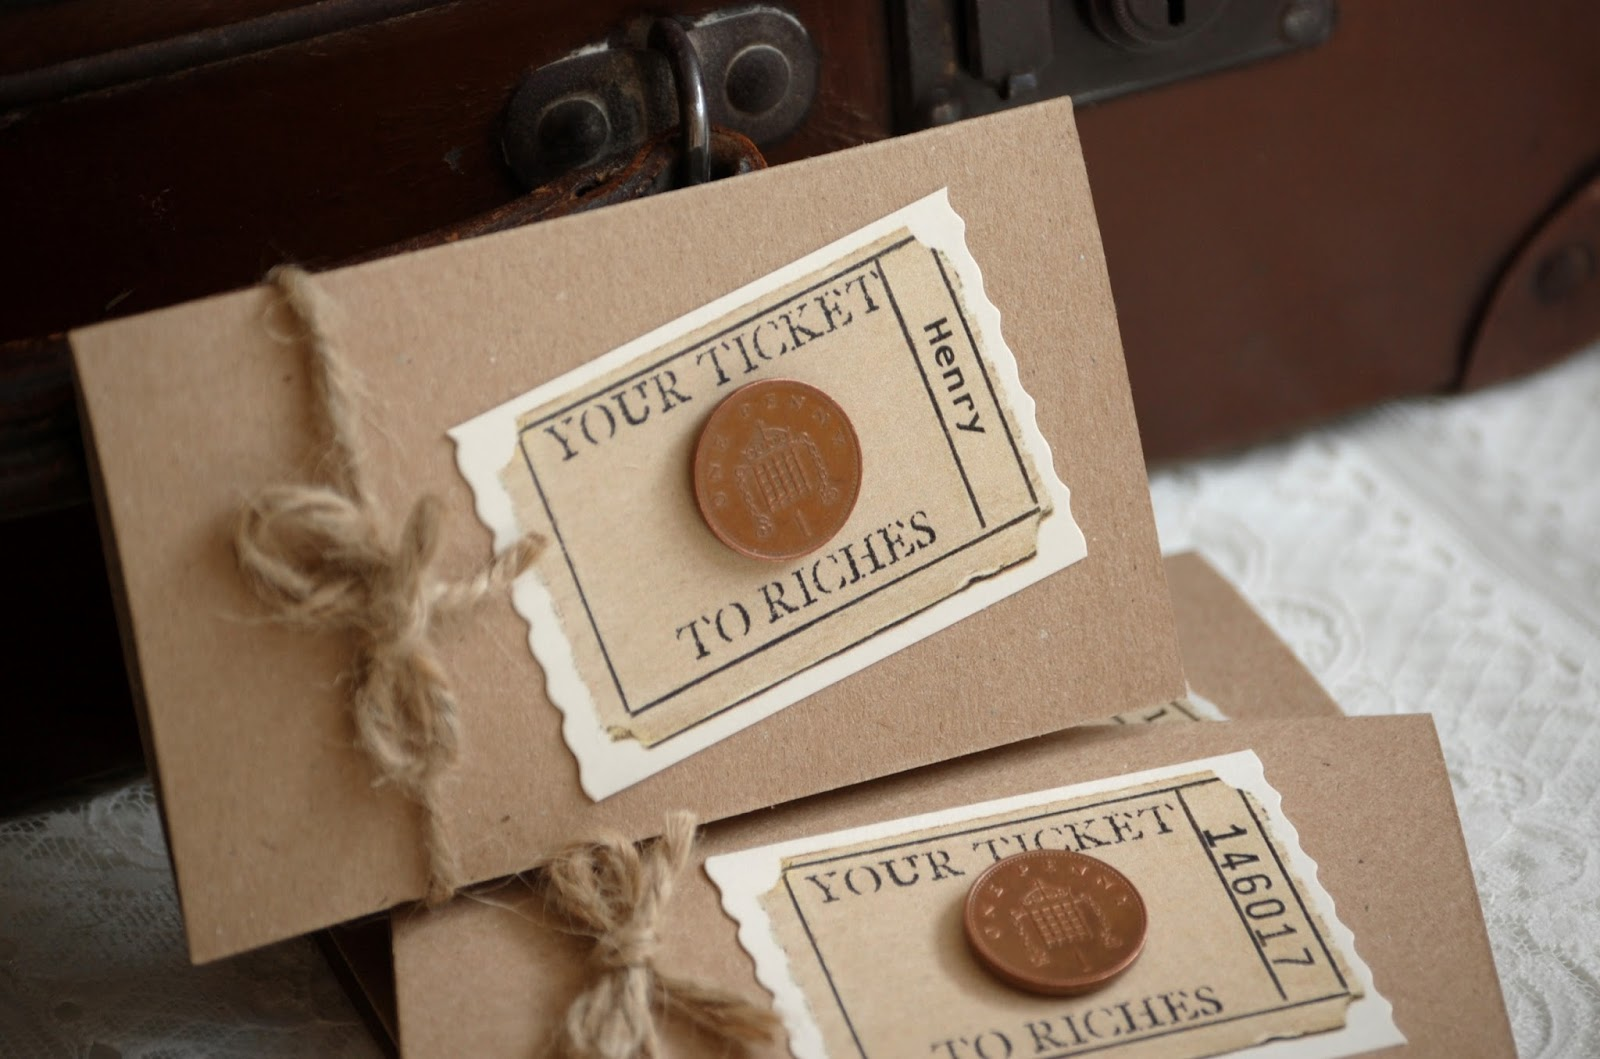 Vintage Twee: Your Ticket (well, your guest's) to Riches